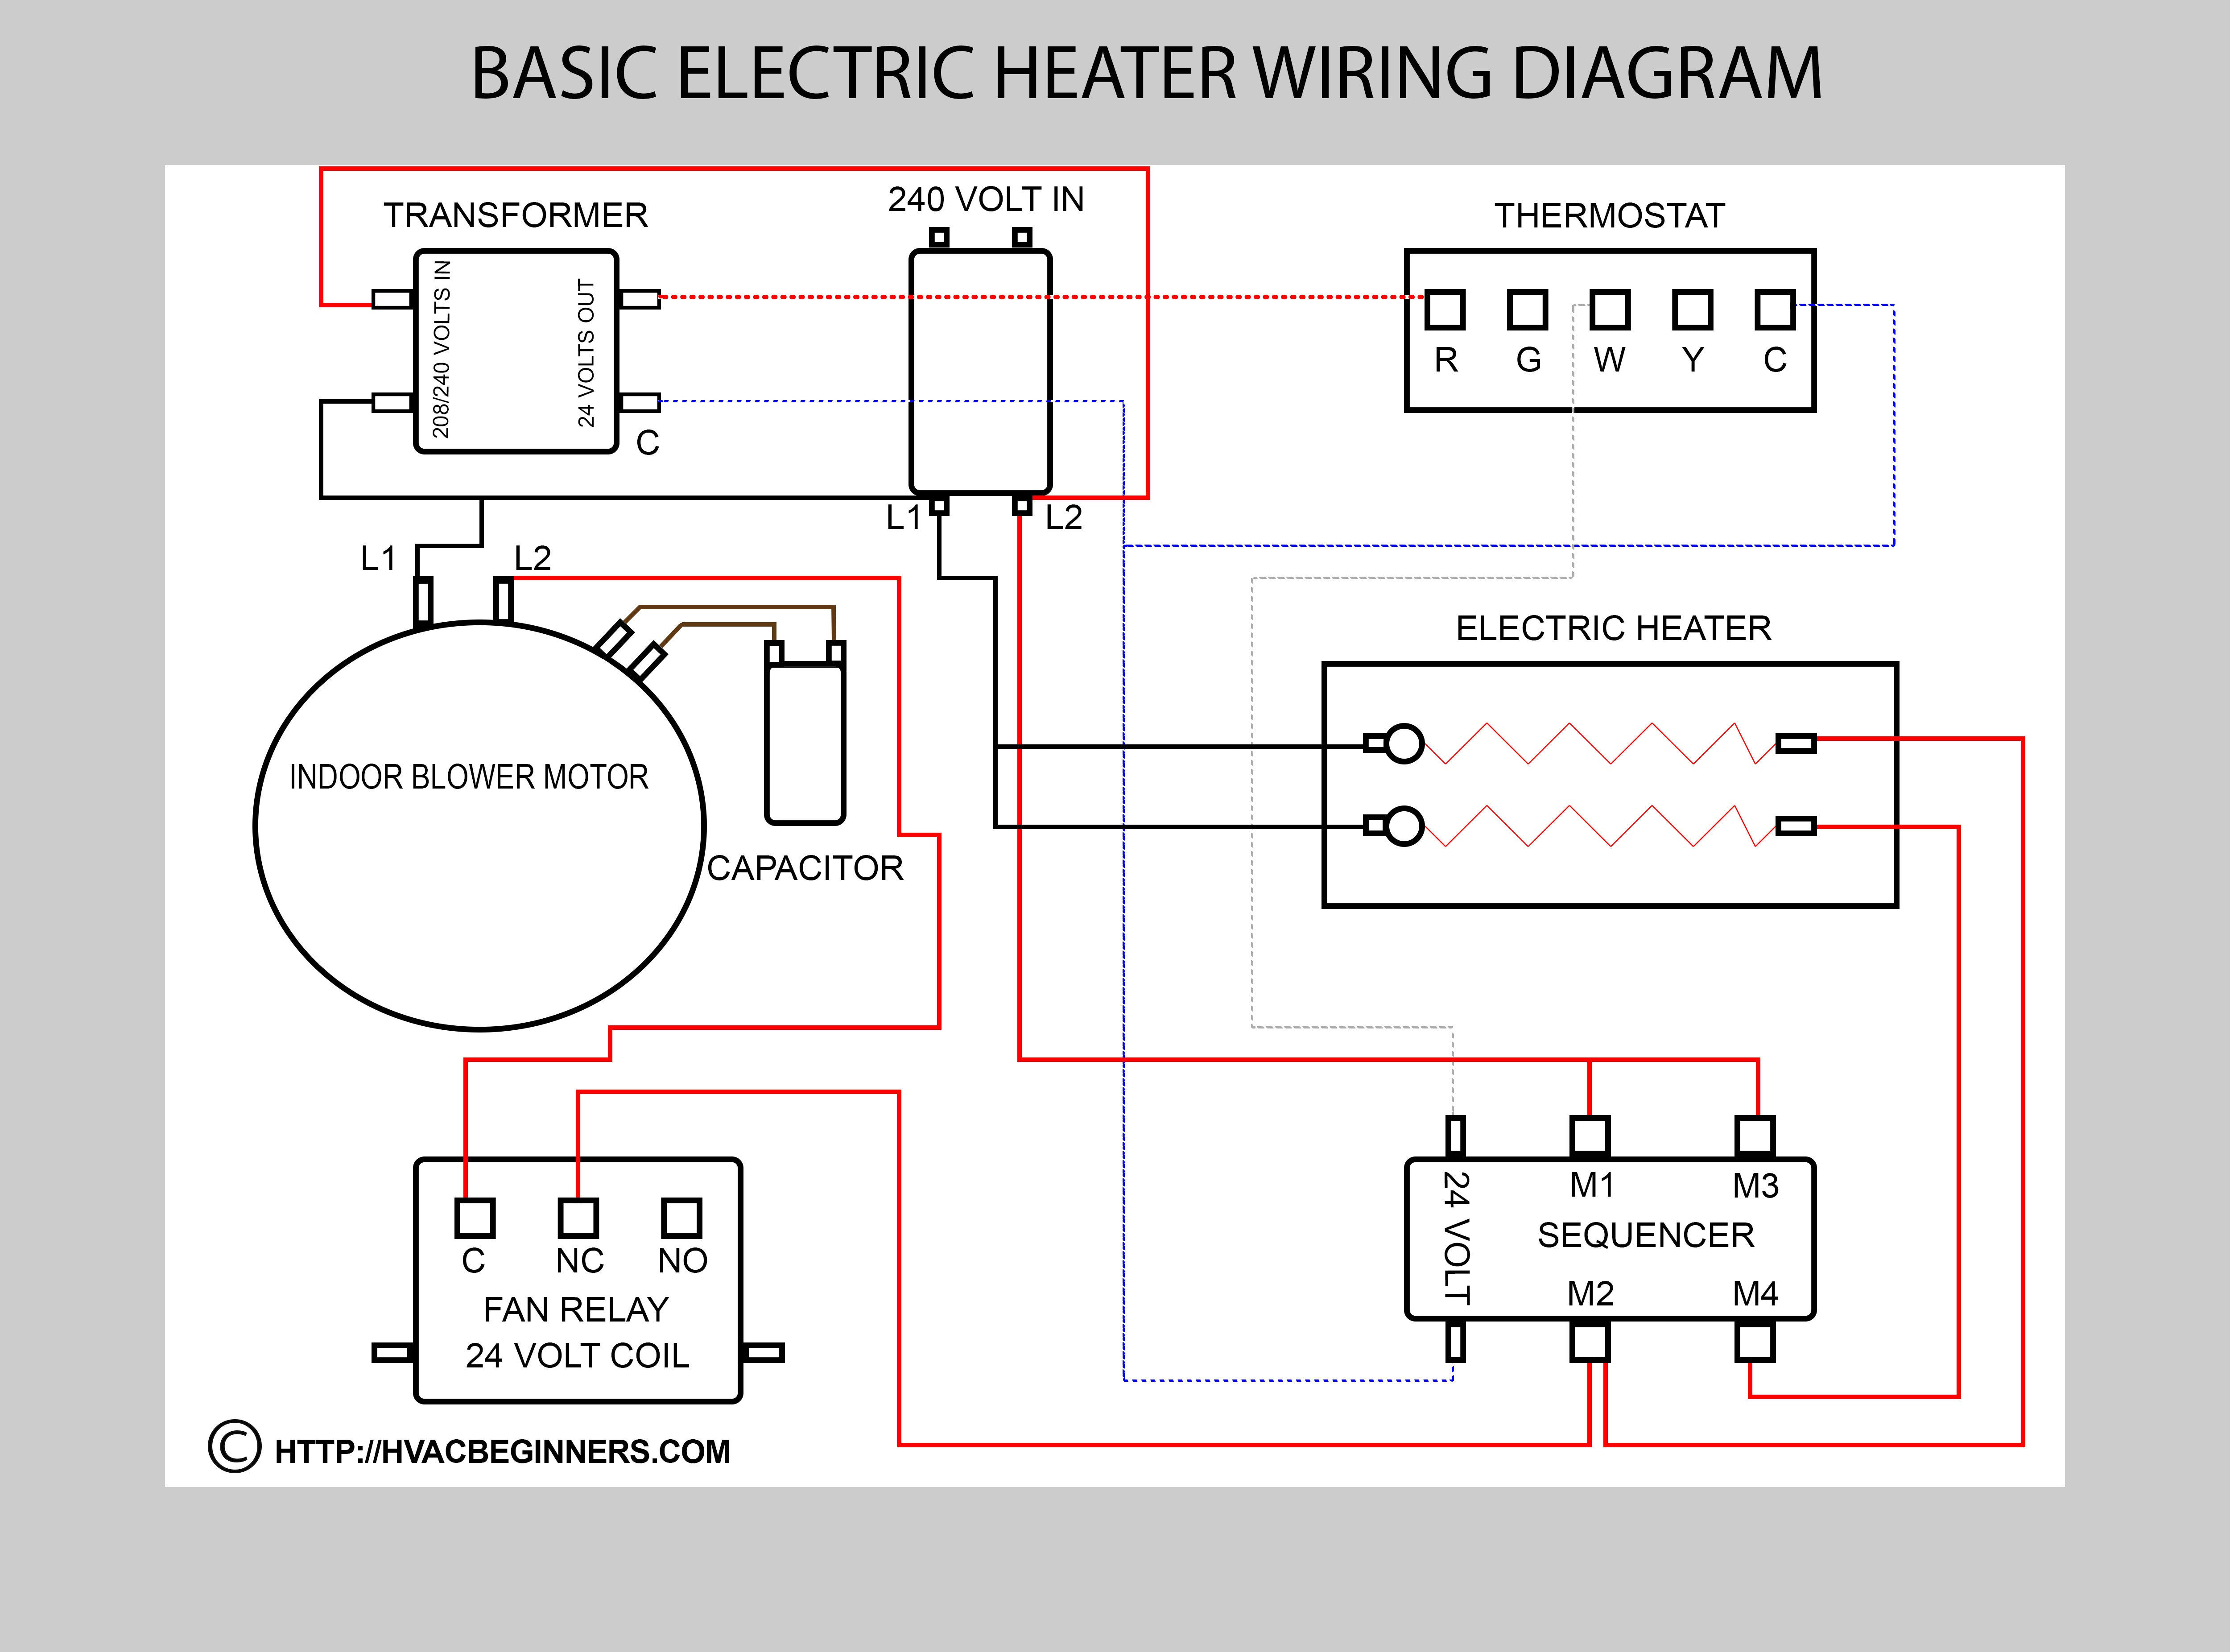 residential thermostat wiring diagram warn ce m8000 winch get air conditioner download